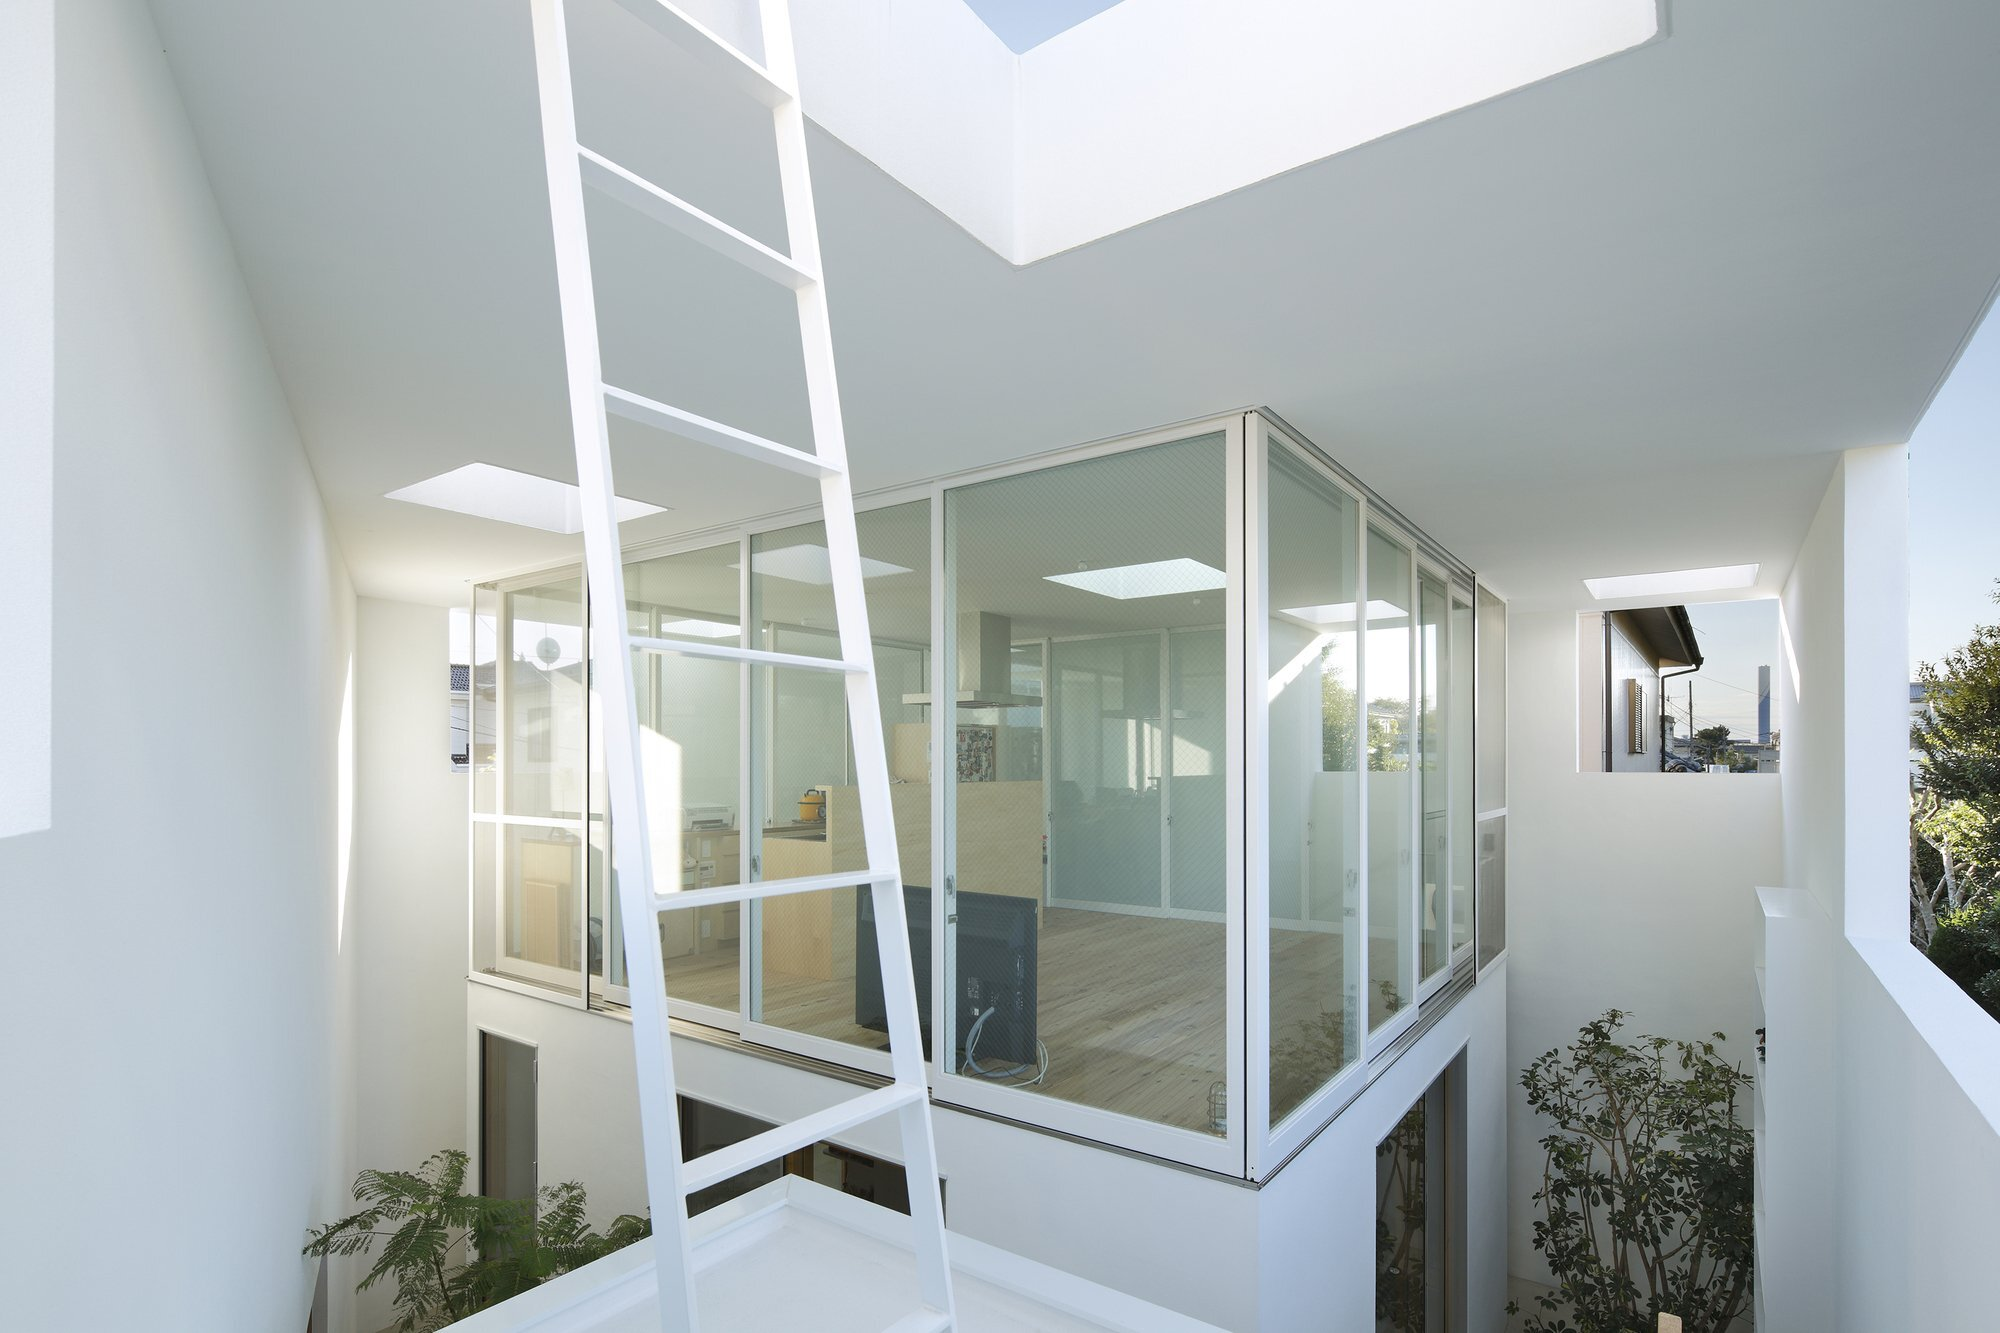 House design inside out house in tokyo japan home design - Small House By Takeshi Hosaka Opens Up To The Outside